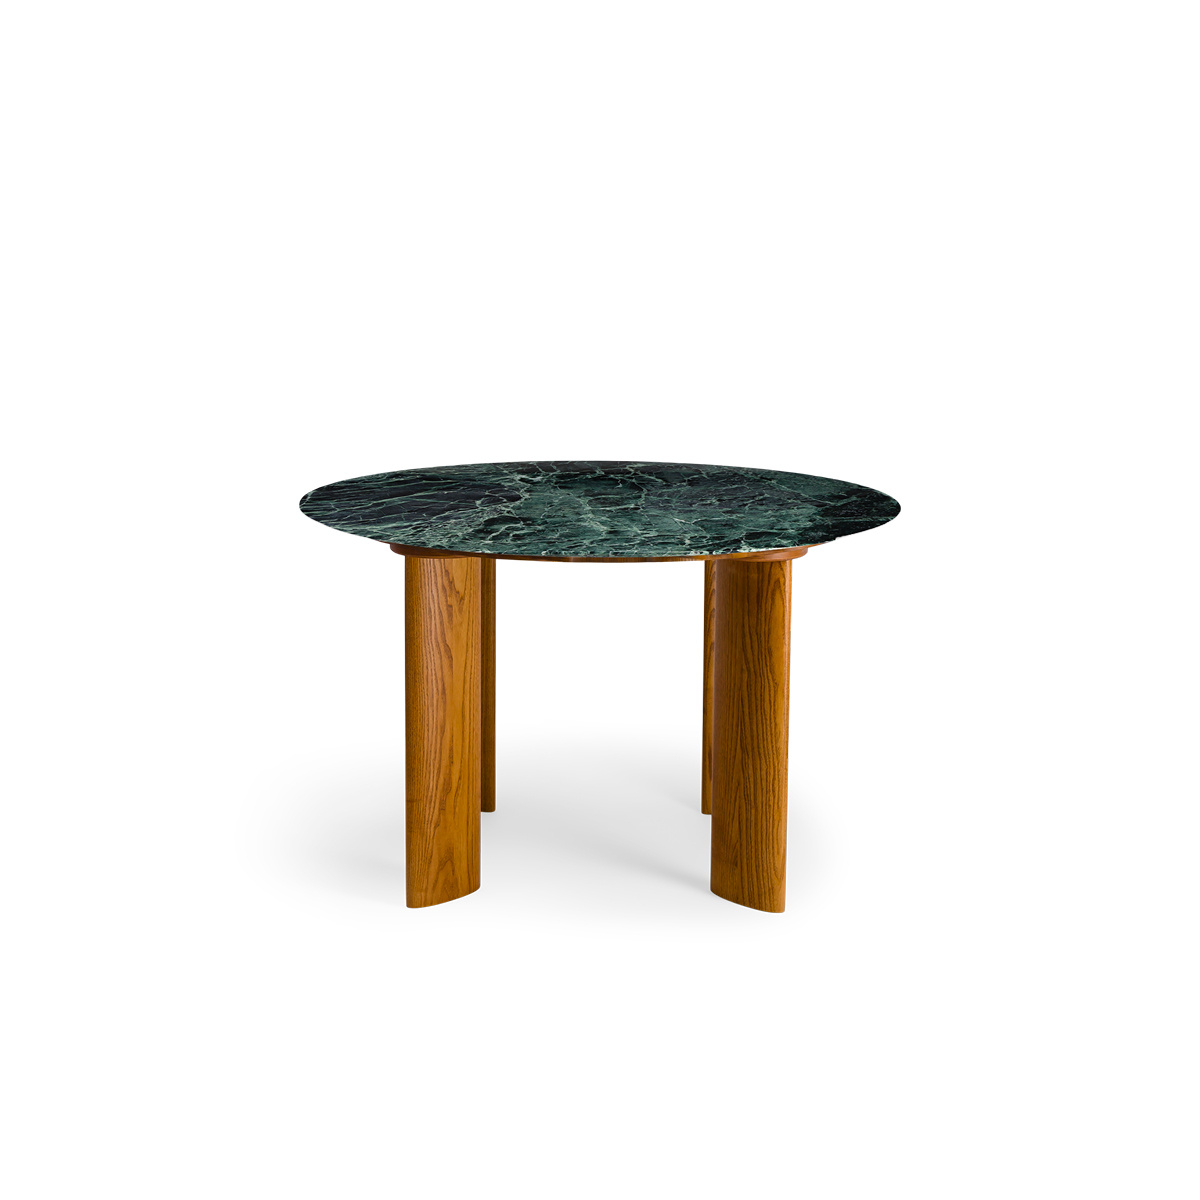 Carlotta Alta Dining Table Green Marble and Iroko Finish Legs - 4 Seats